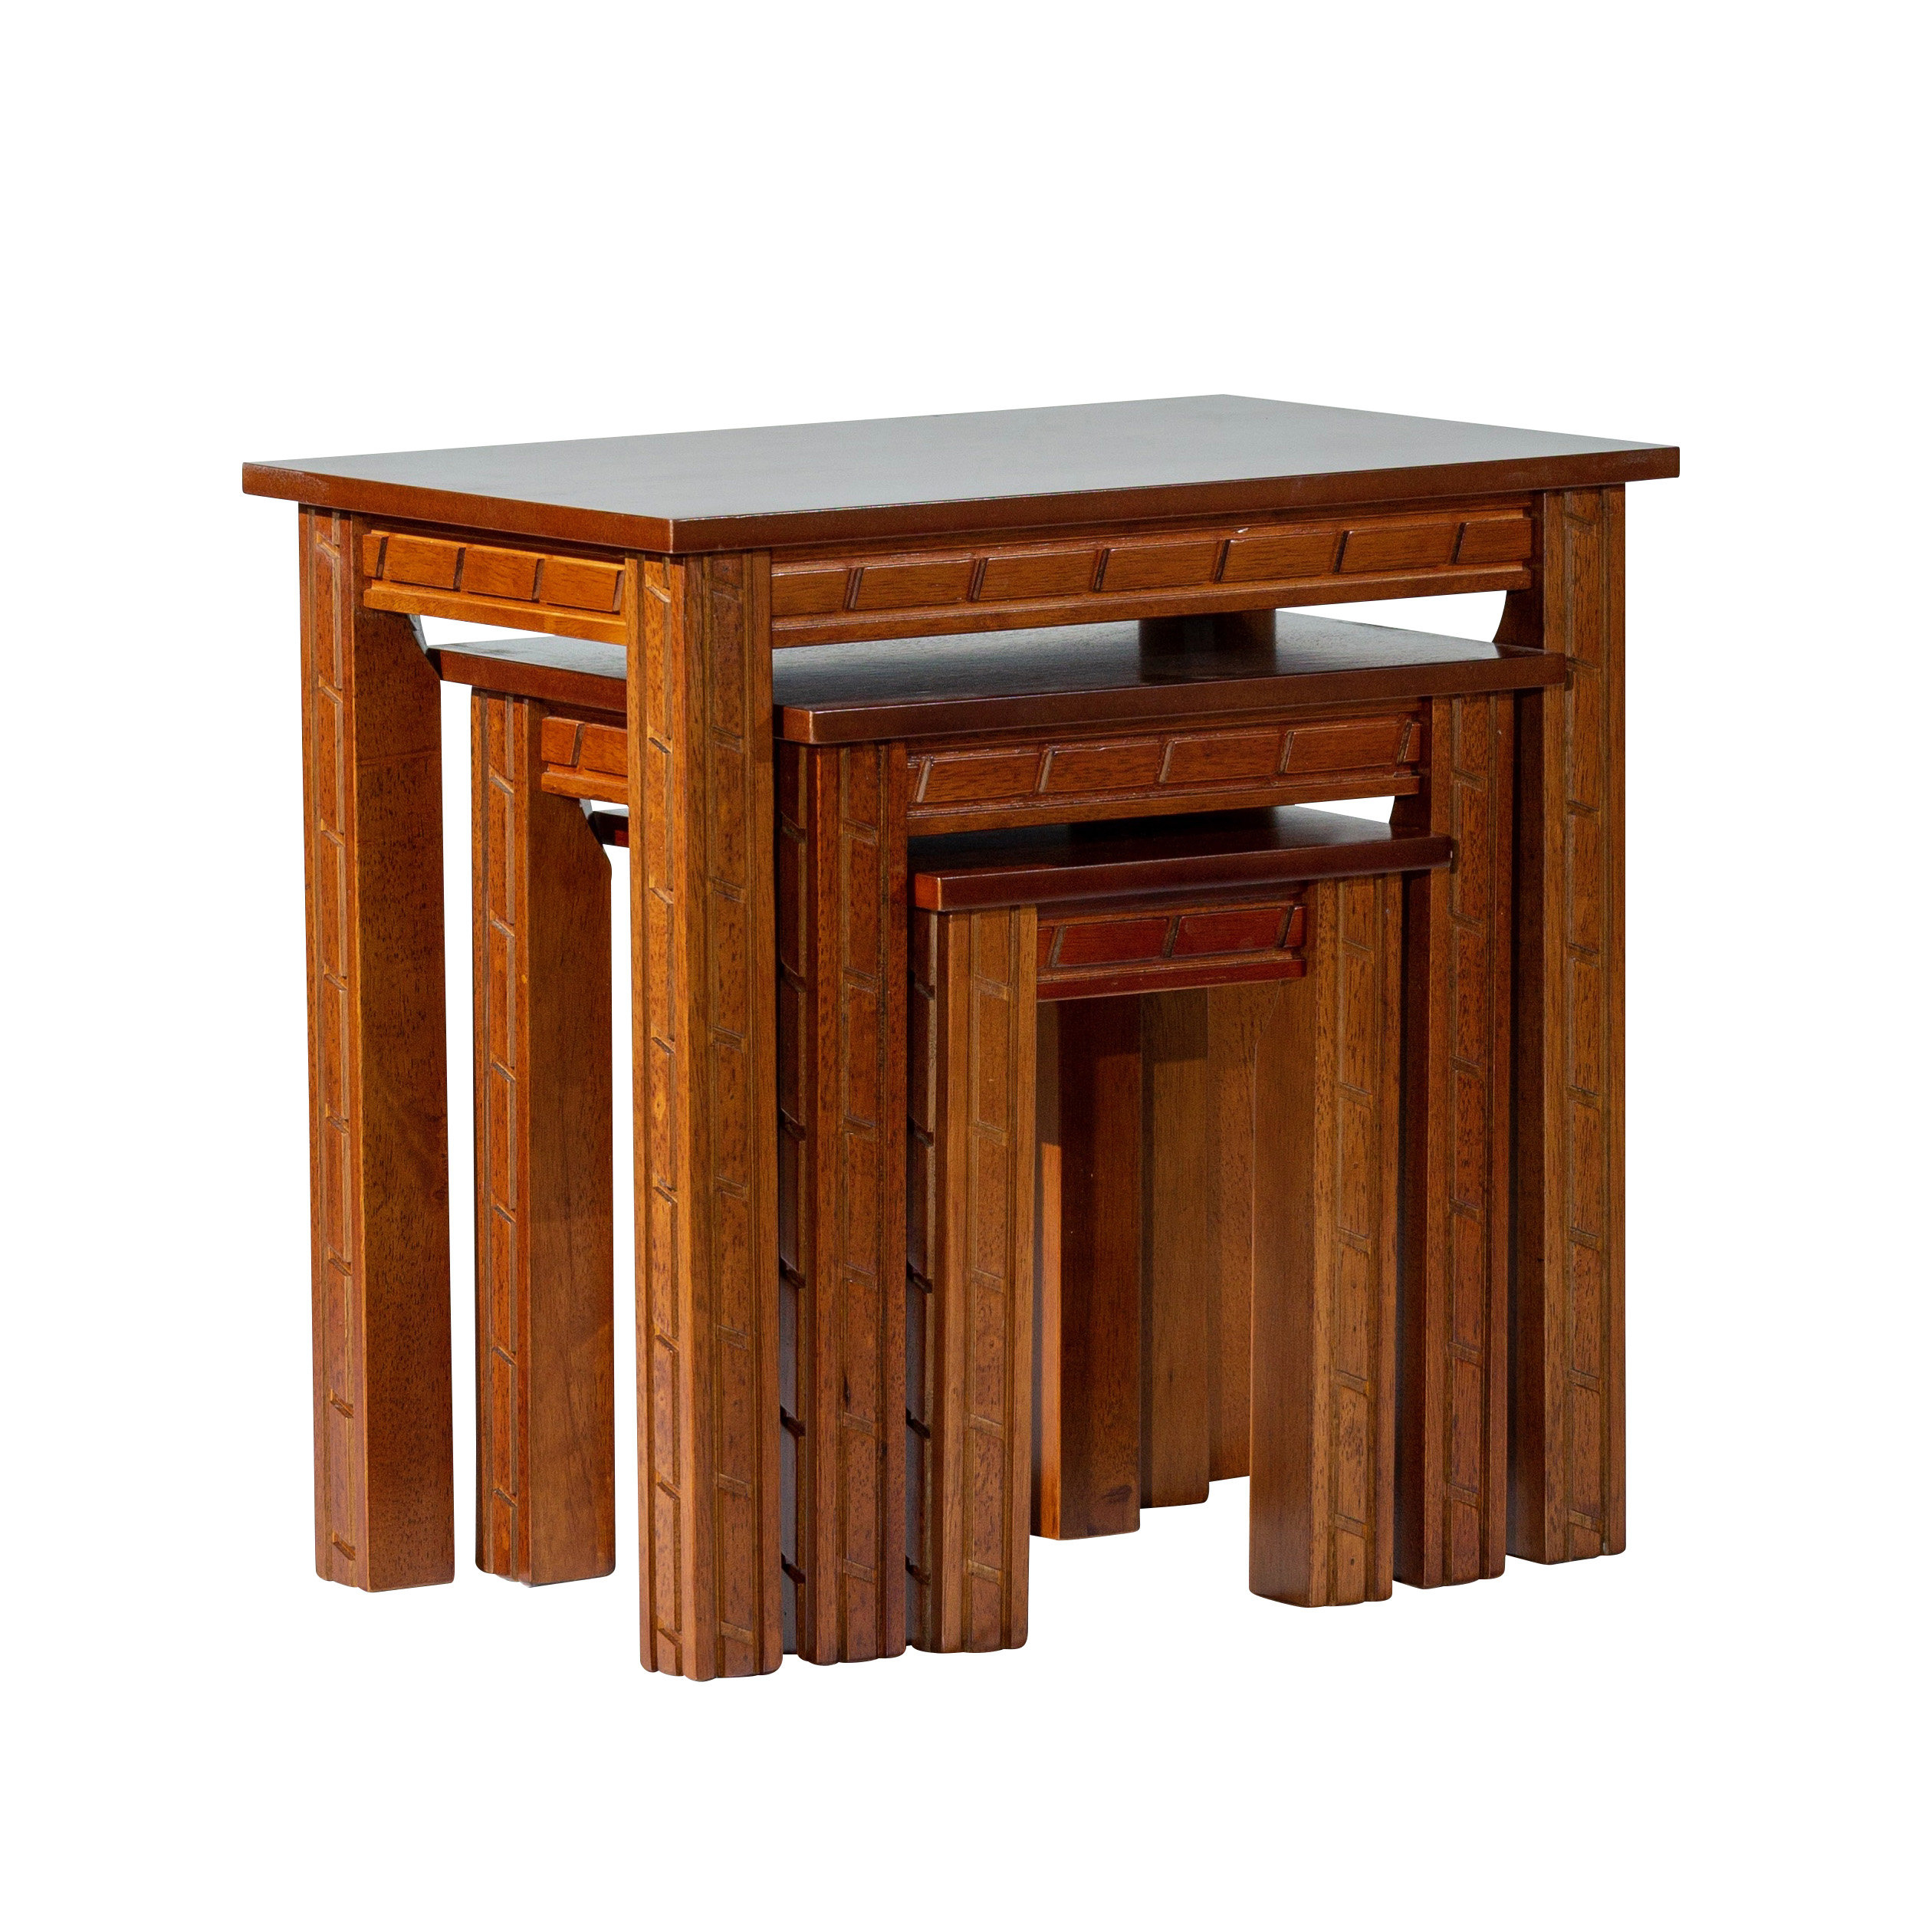 Millwood Pines Castellanos Furniture 3 Piece Nesting Tables (View 14 of 25)